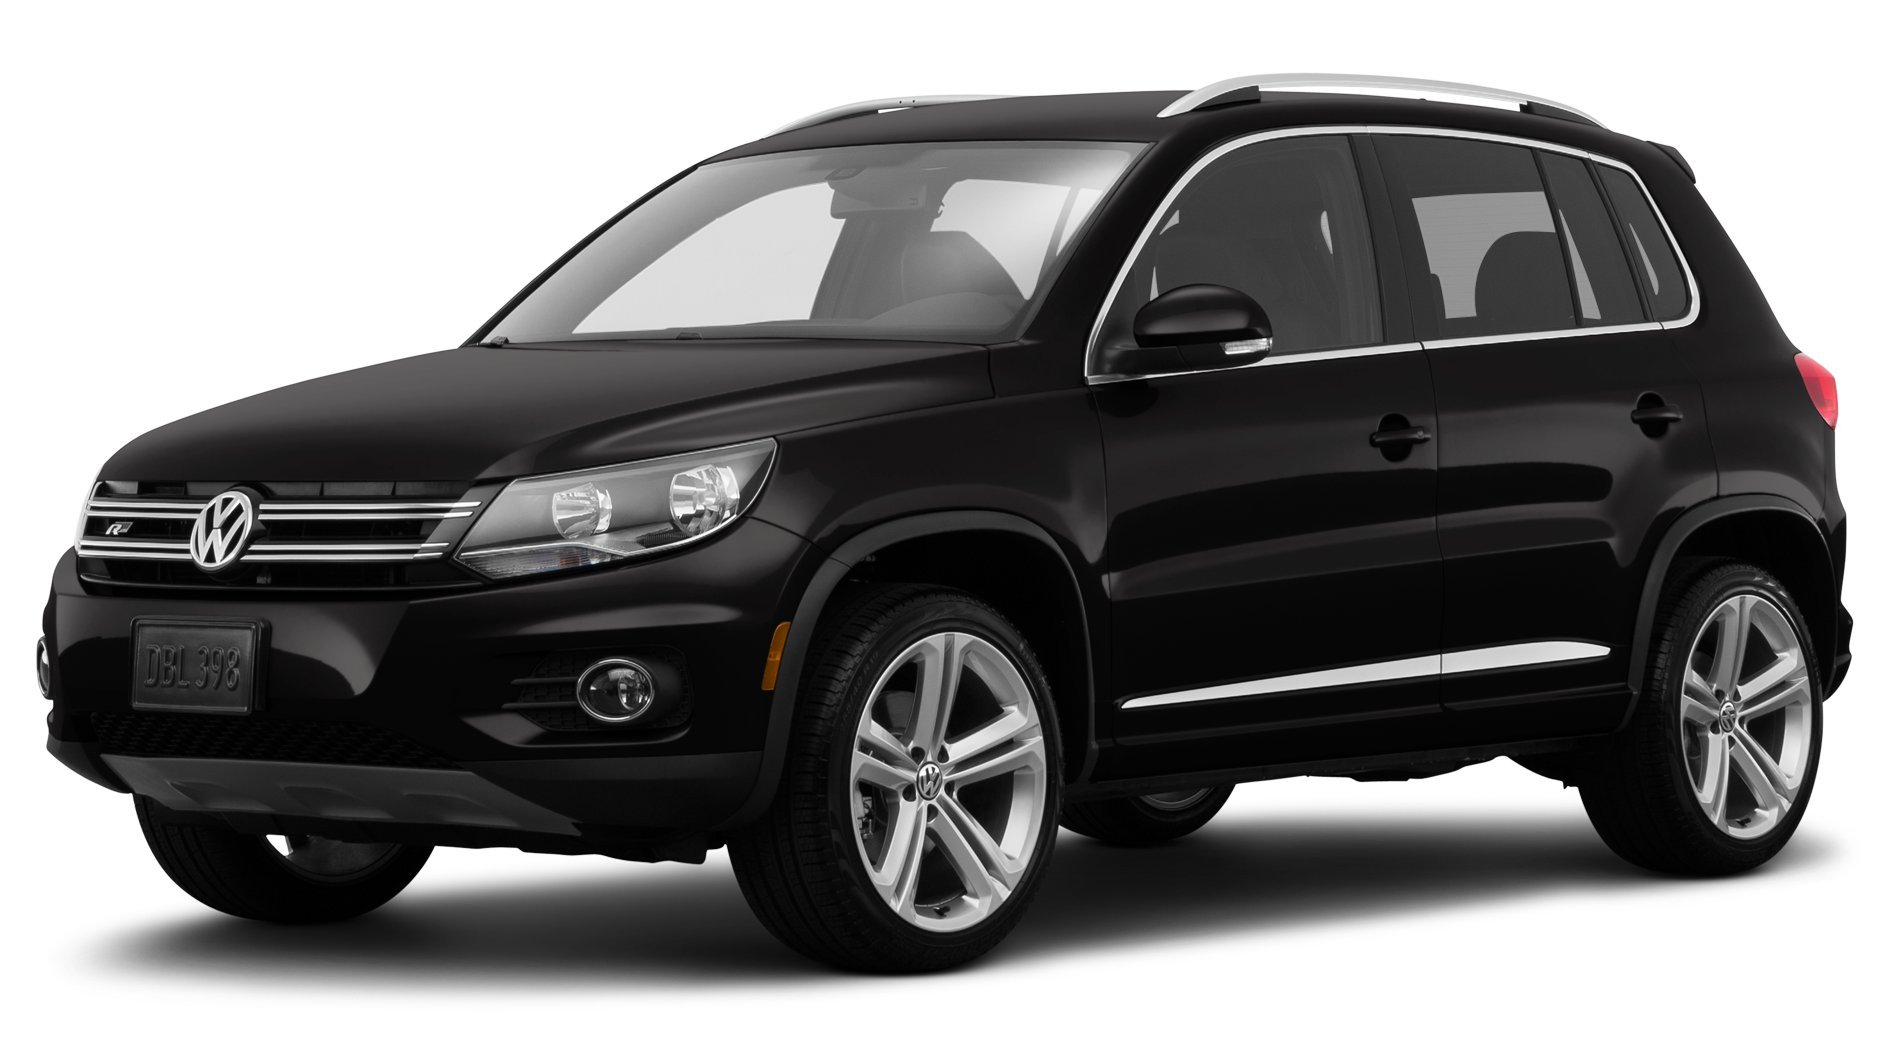 715ugsr7UFL Interesting Info About 2018 Vw Tiguan R Line with Mesmerizing Pictures Cars Review